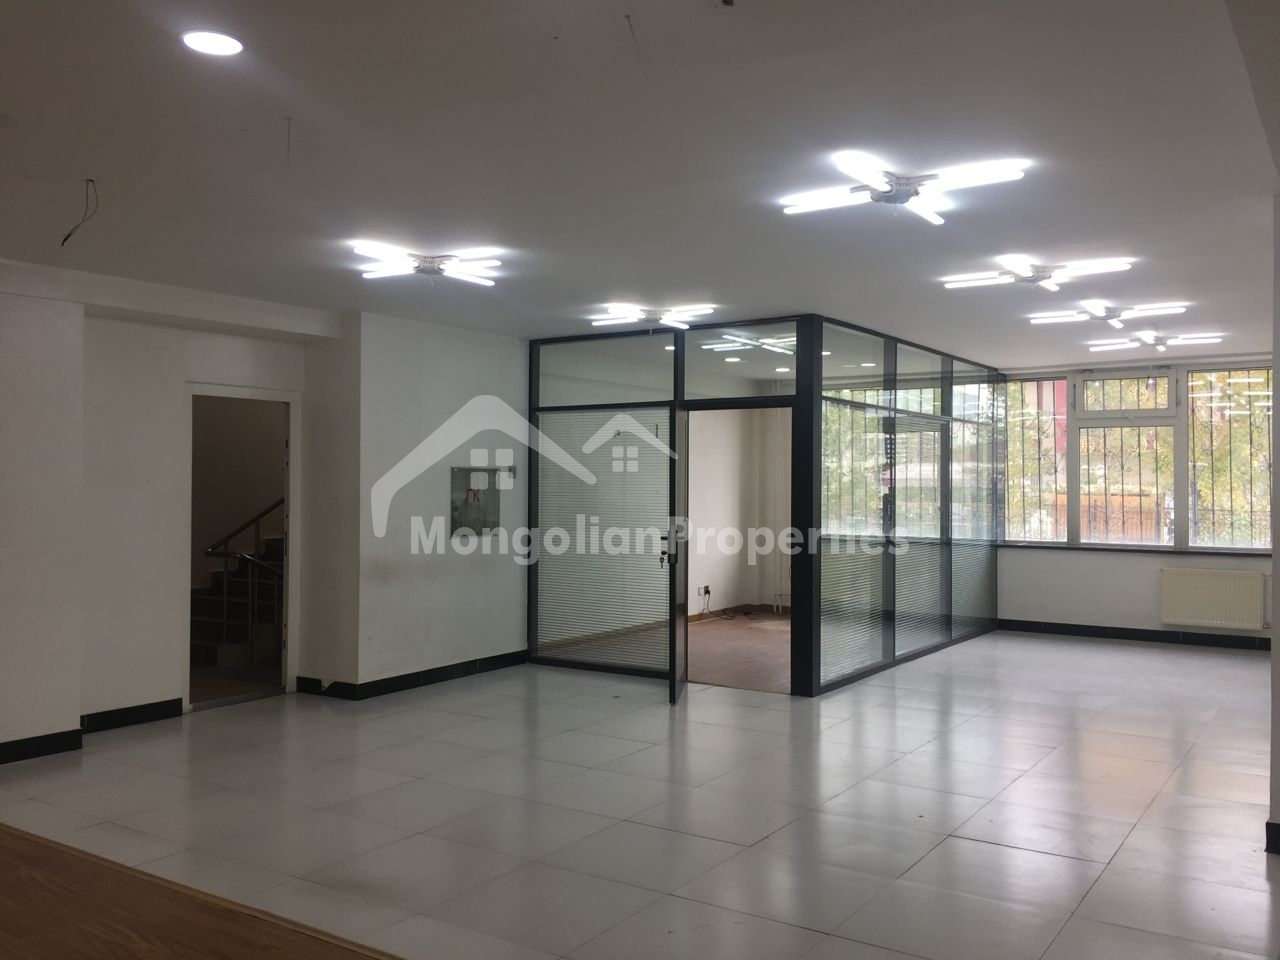 Spacious Parking, 680m2, 2 stoery office building is for rent just behind Tengis Cinema